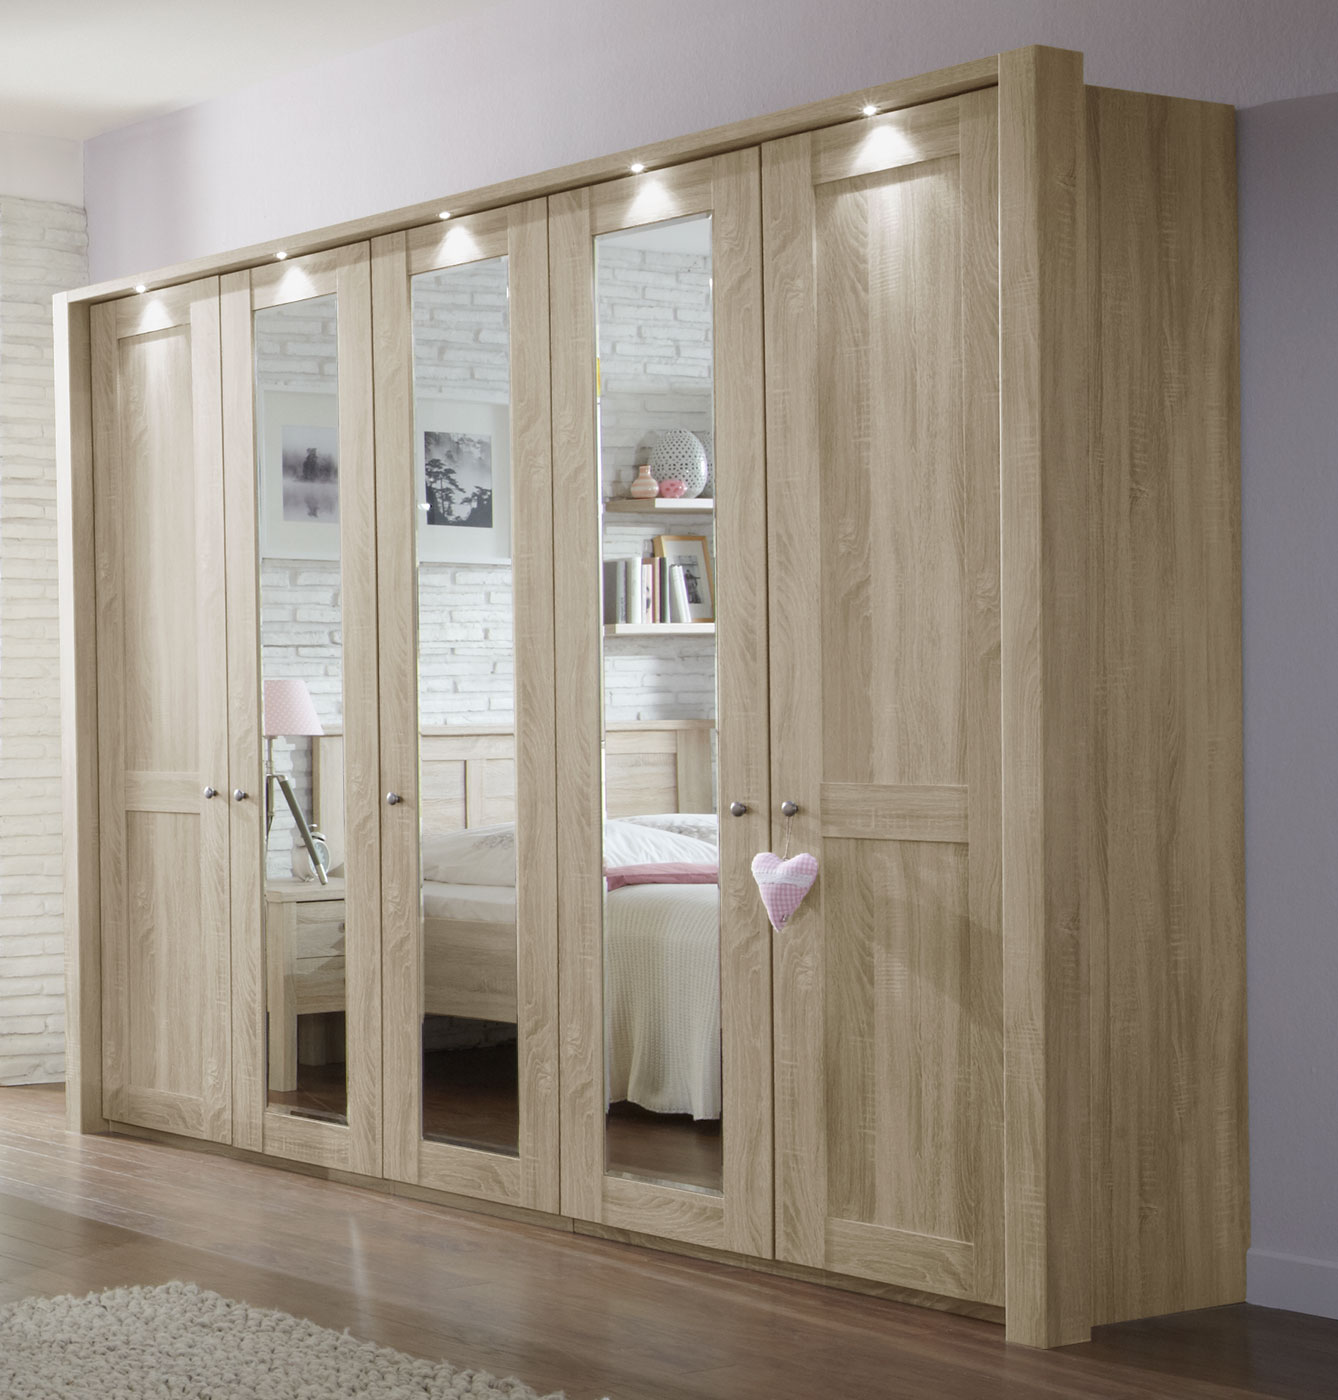 schrank mit dreht ren eiche s gerau dekor mit spiegelglas farim. Black Bedroom Furniture Sets. Home Design Ideas